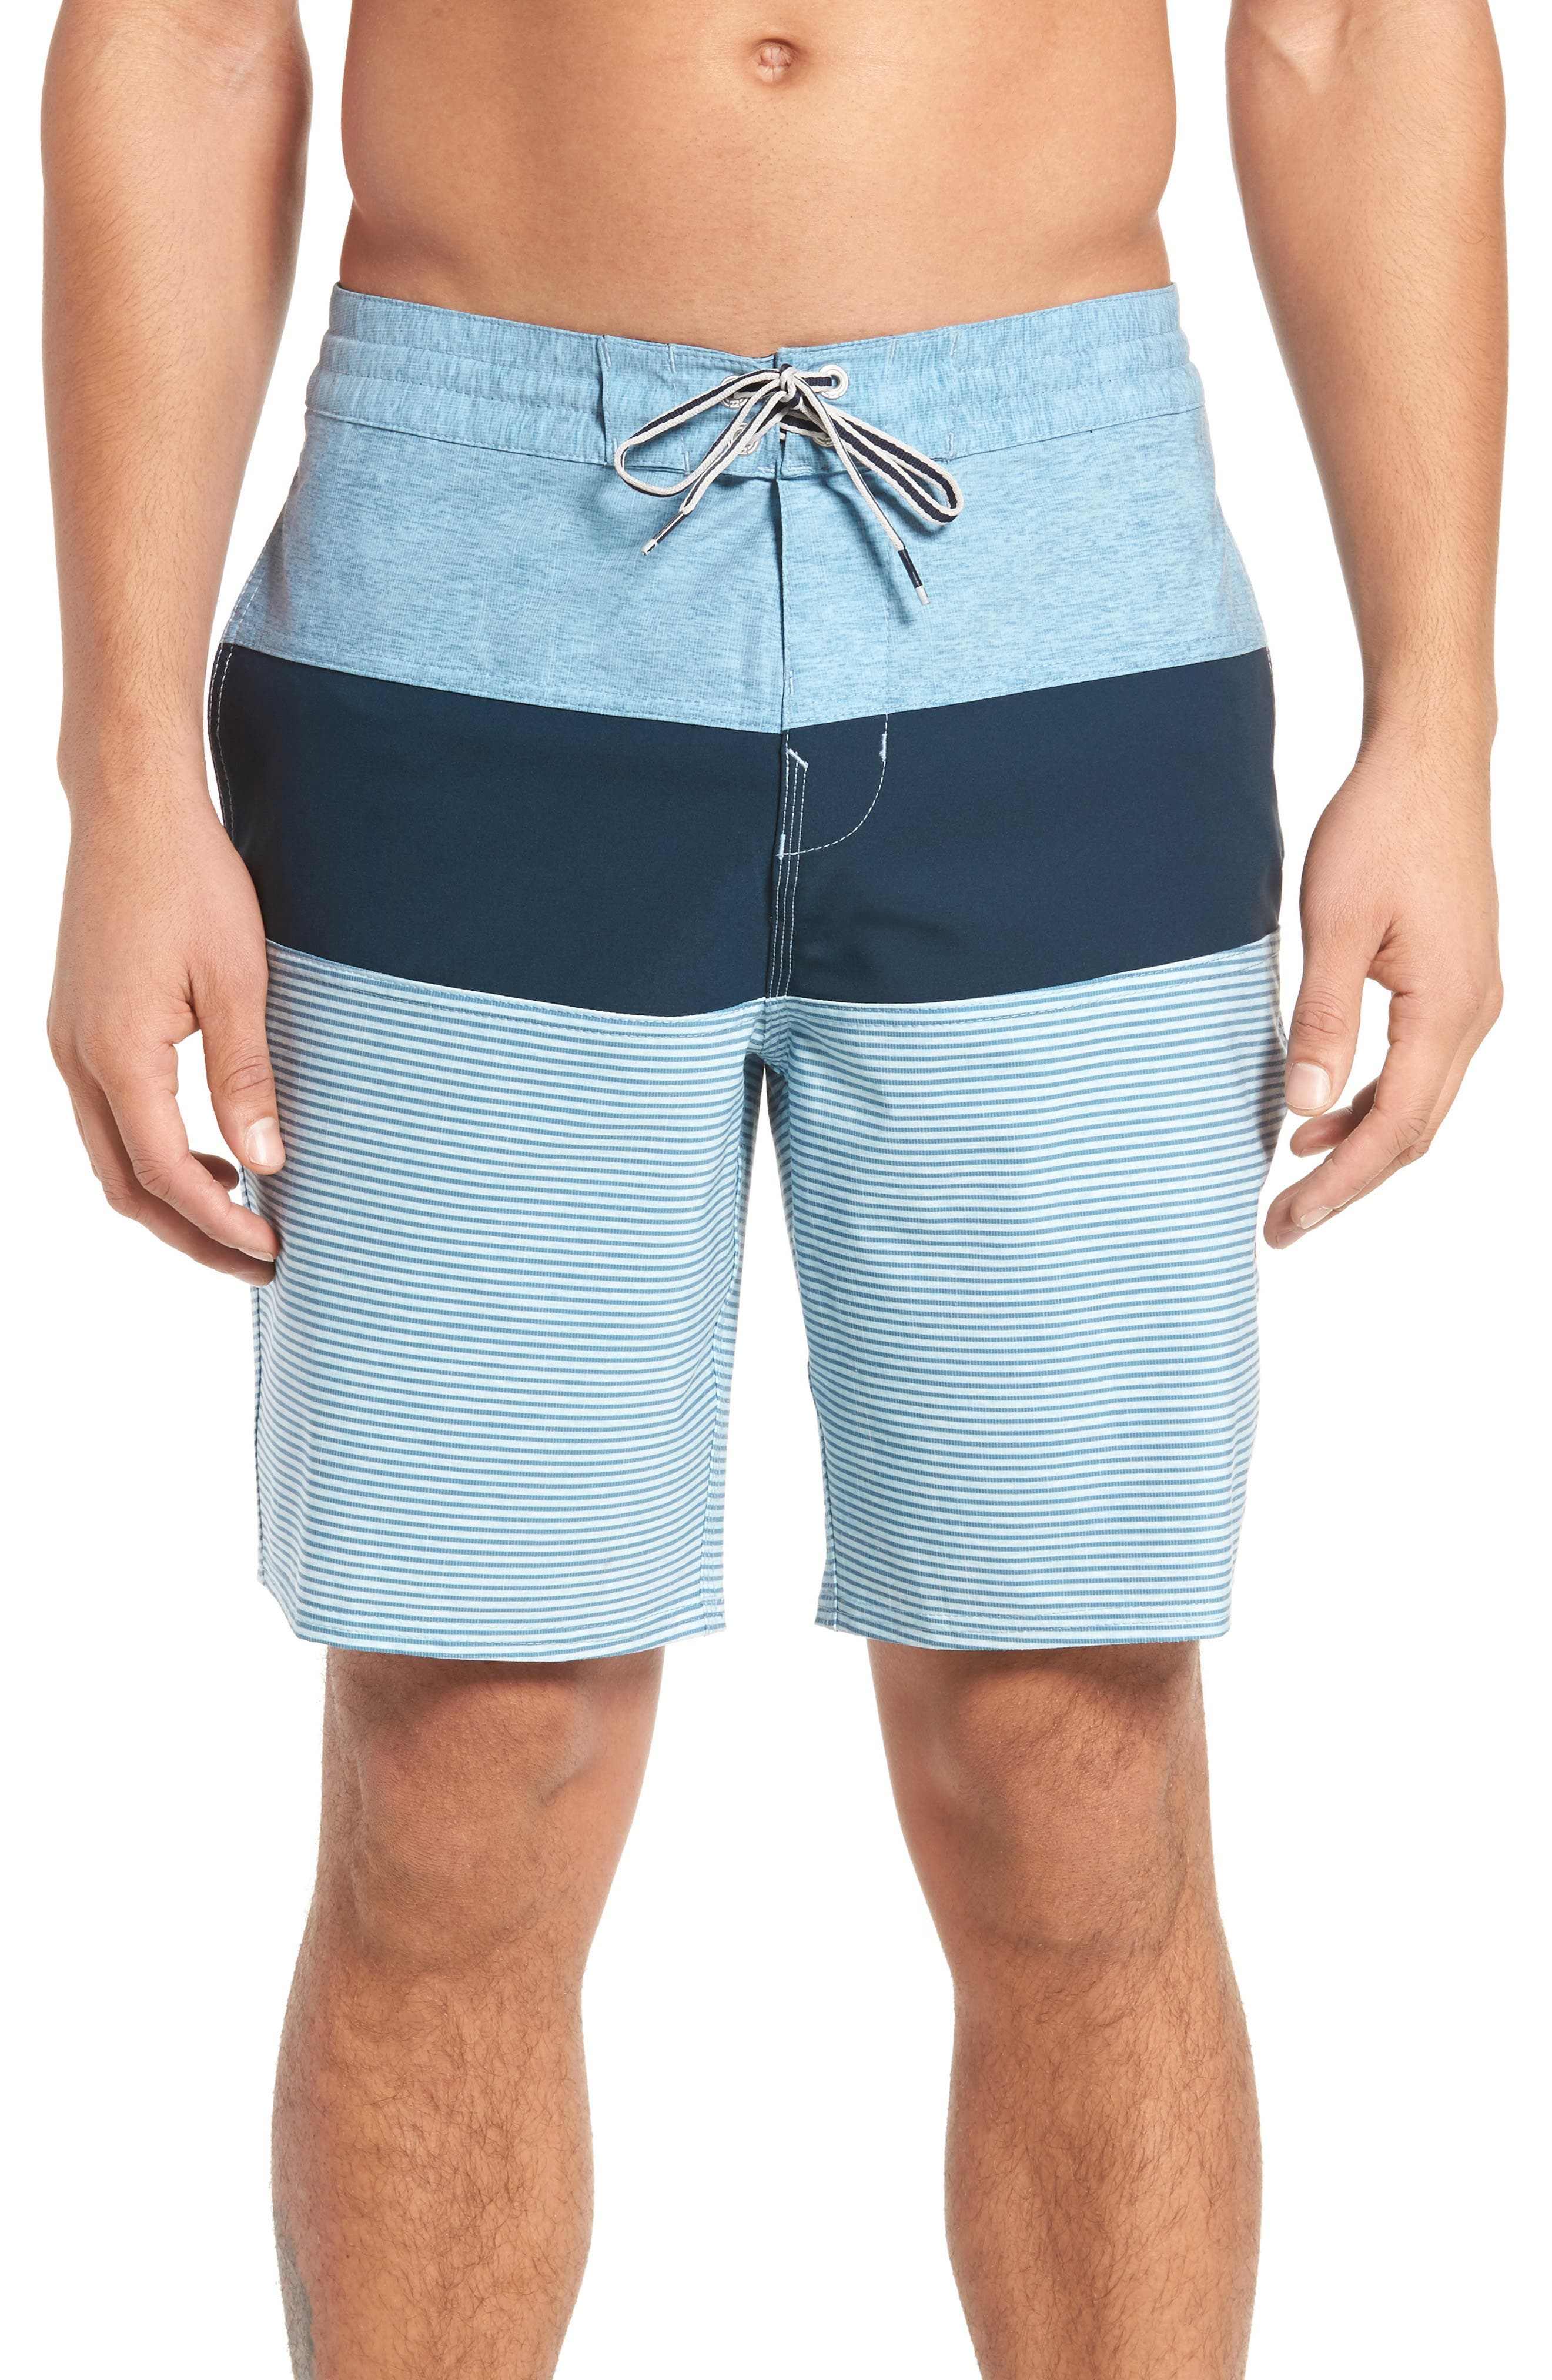 Tribong LT Board Shorts,                             Main thumbnail 2, color,